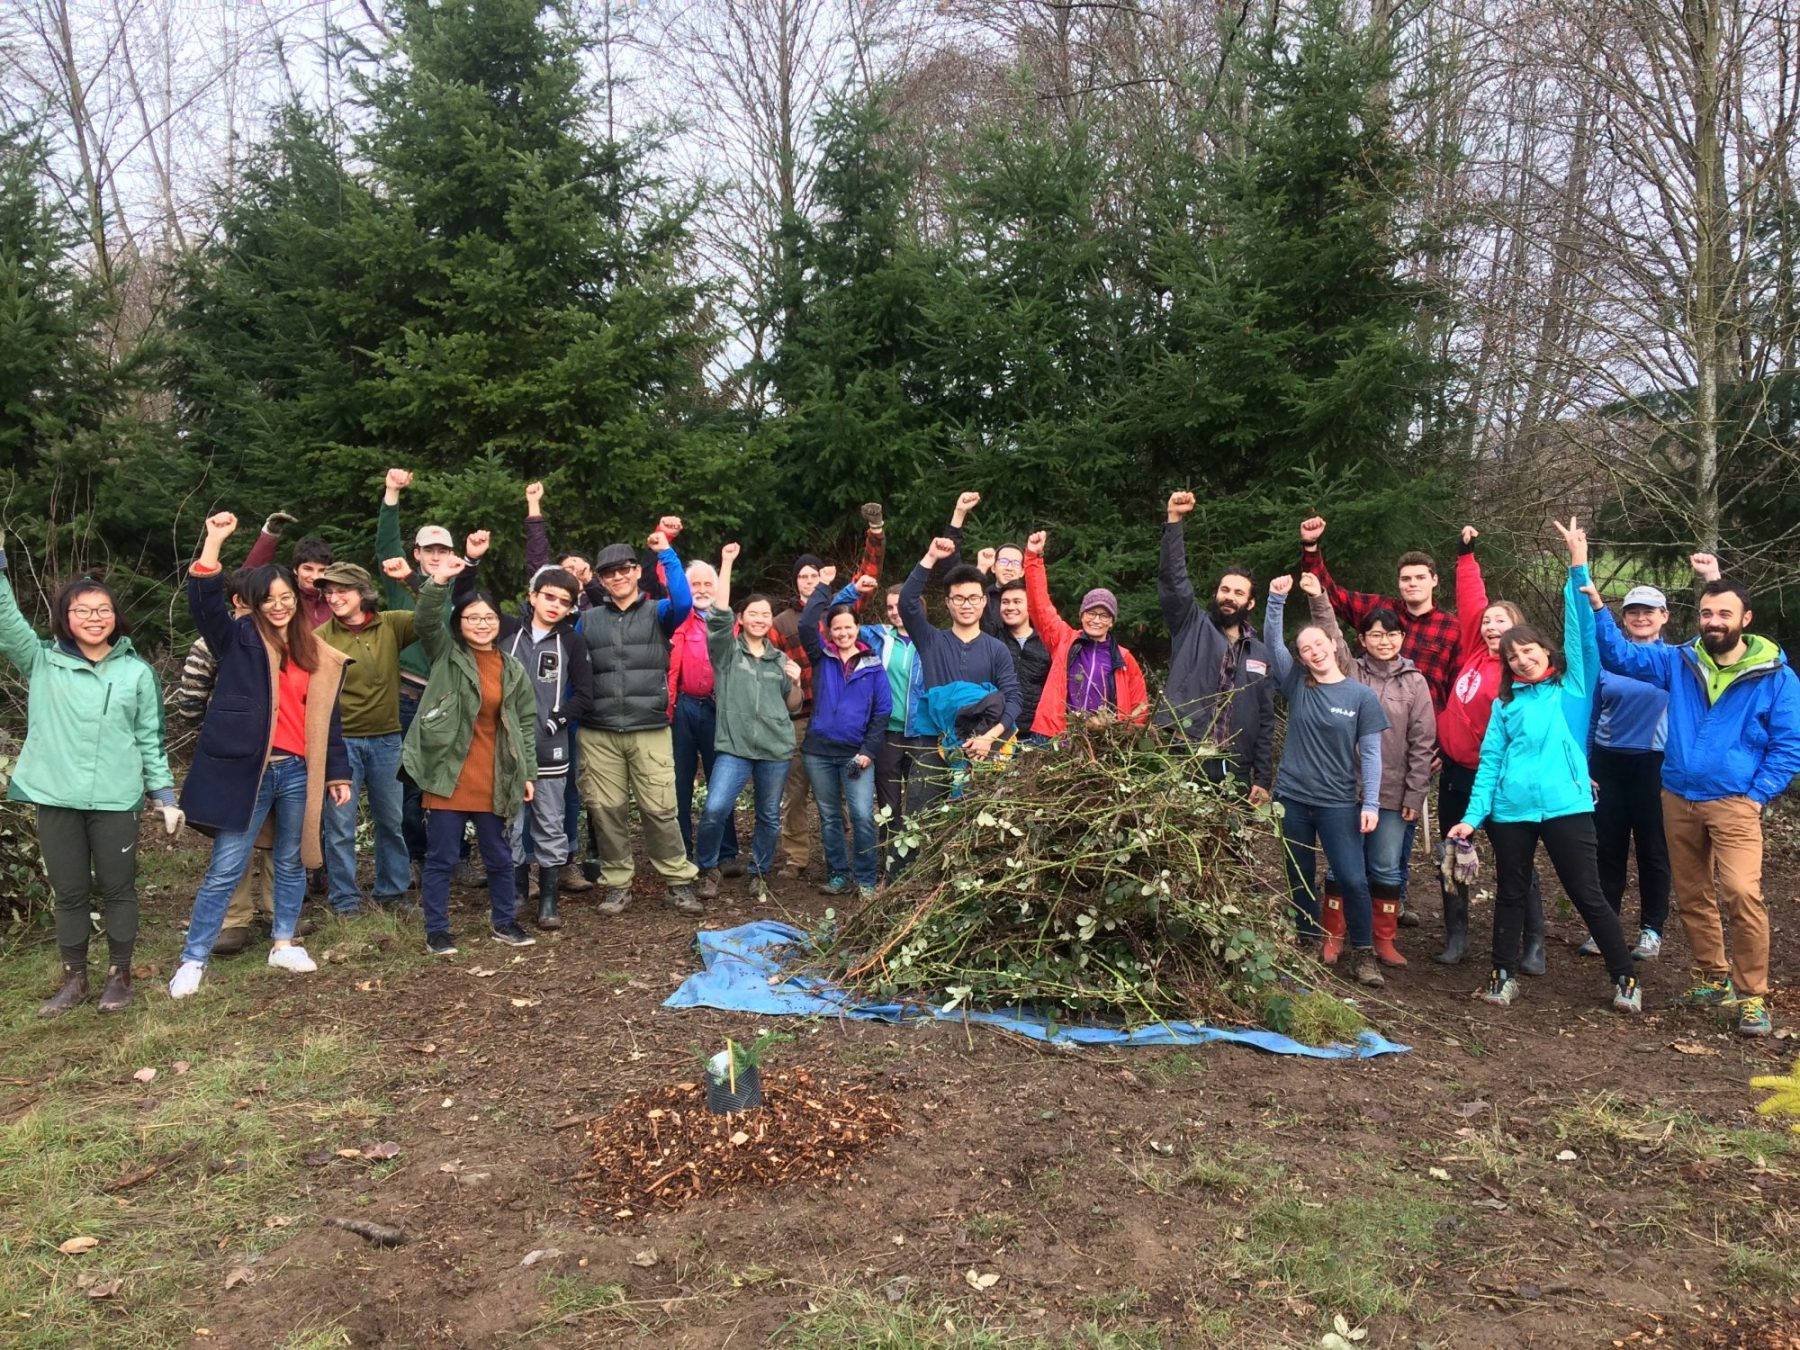 Volunteers helping out in the Union Bay Natural Area, 2019 MLK Day of Service